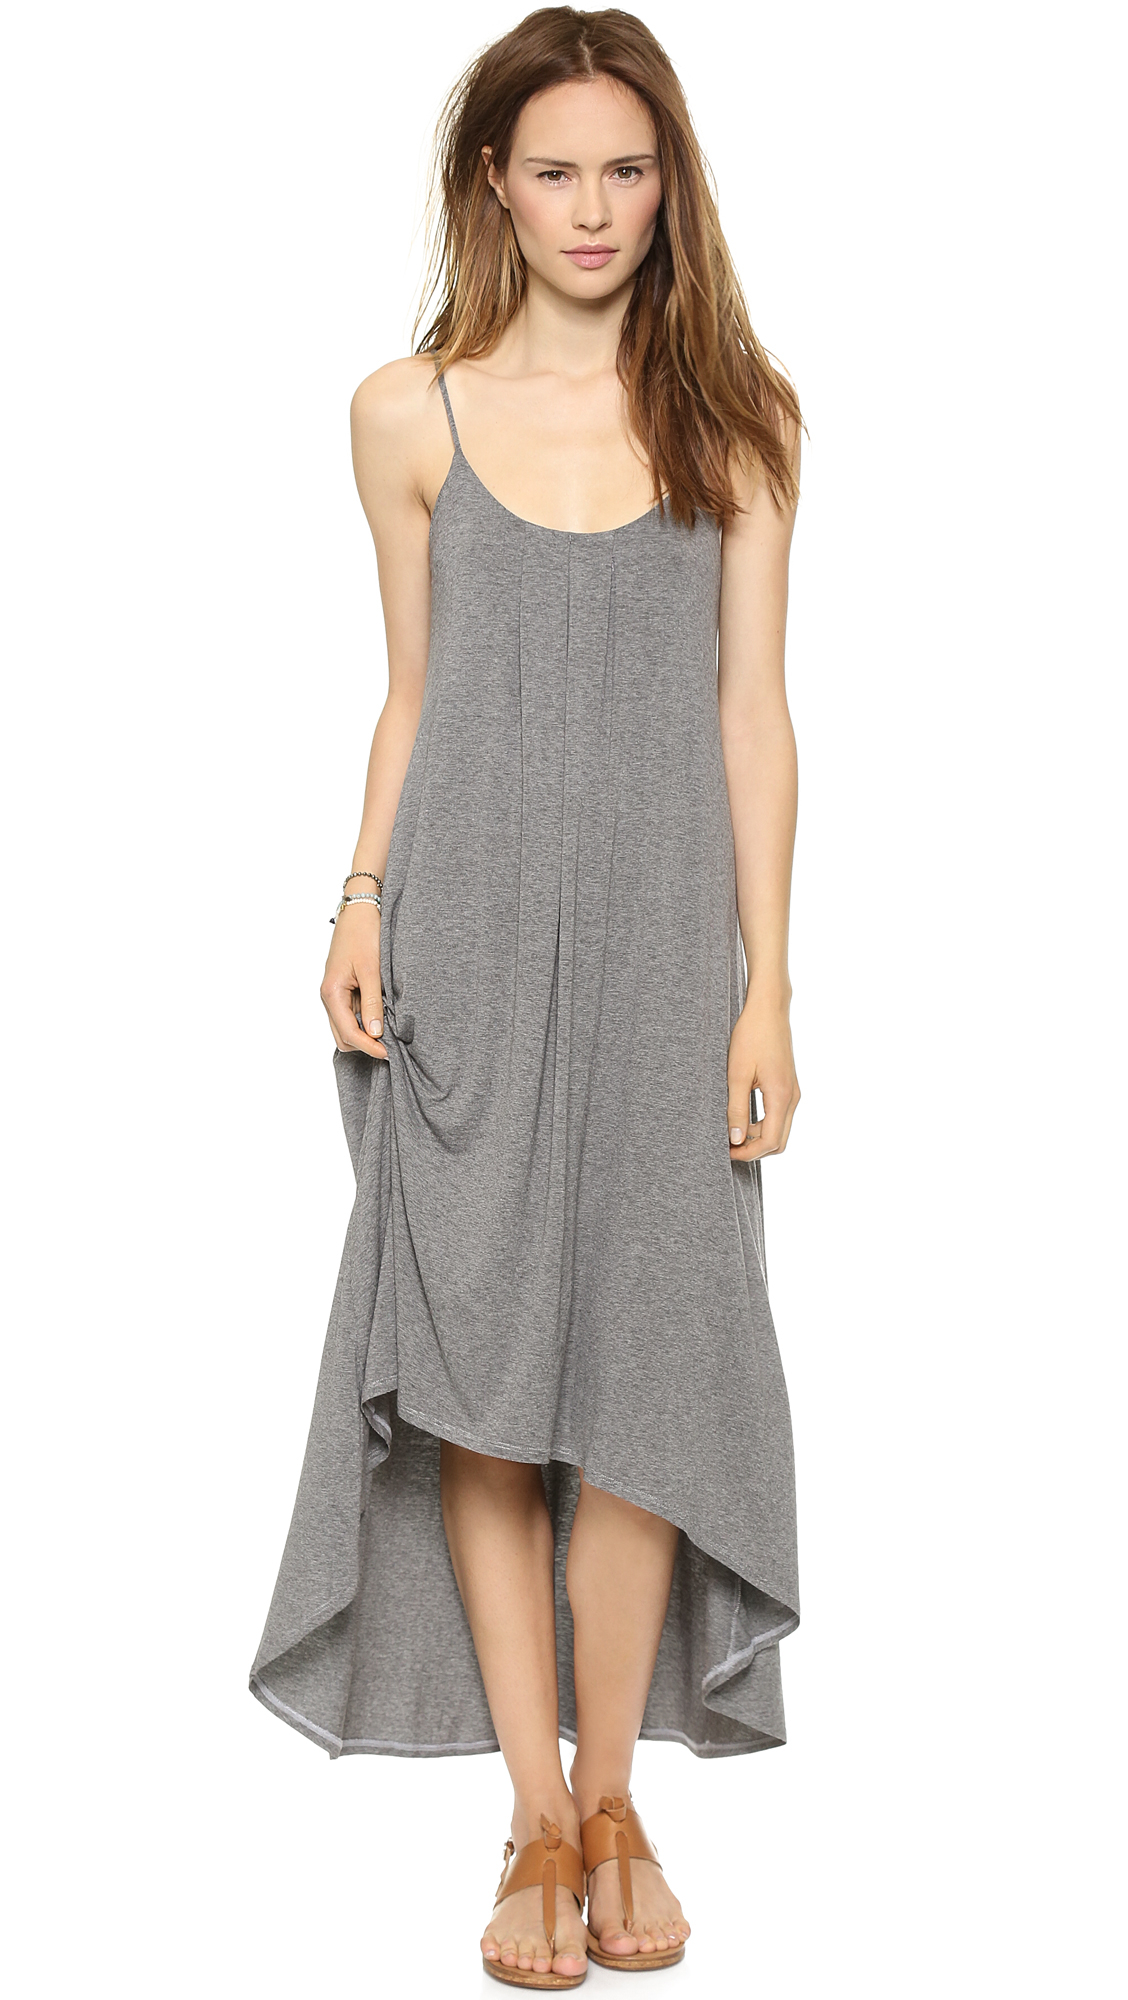 Find great deals on eBay for plus size grey dress. Shop with confidence.